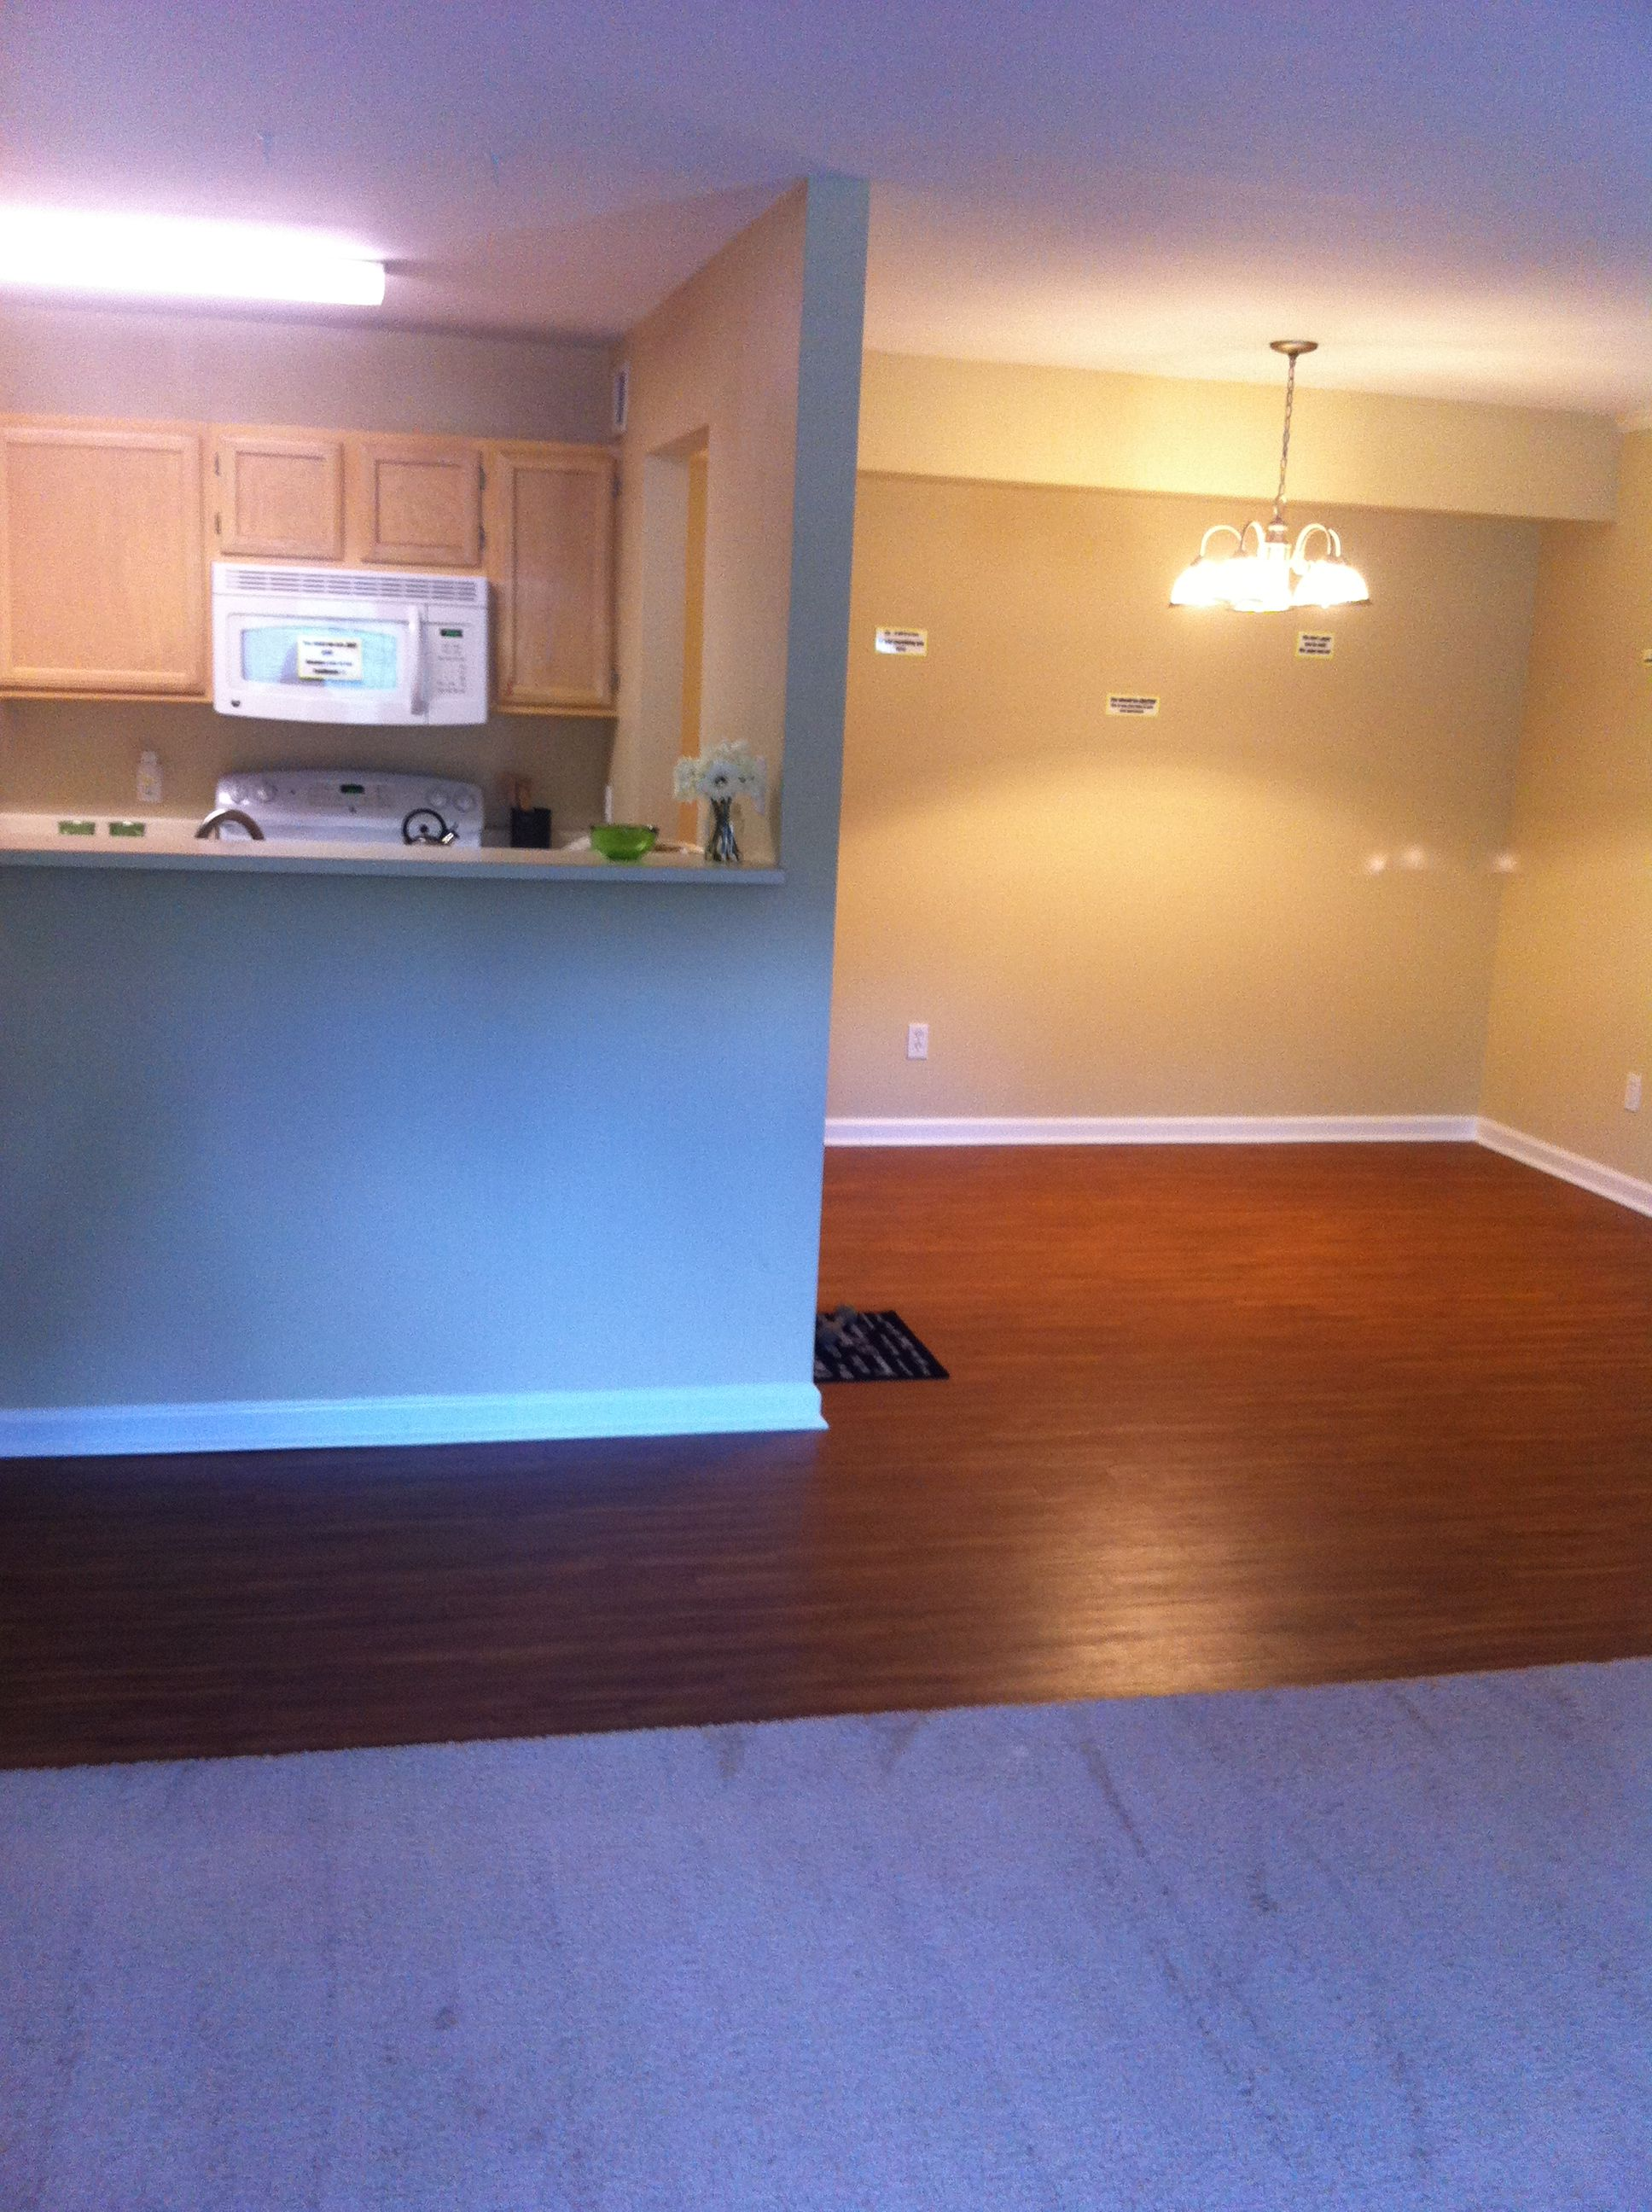 The 1/1 kitchen and dining area. The apartment pictured features our plank flooring.